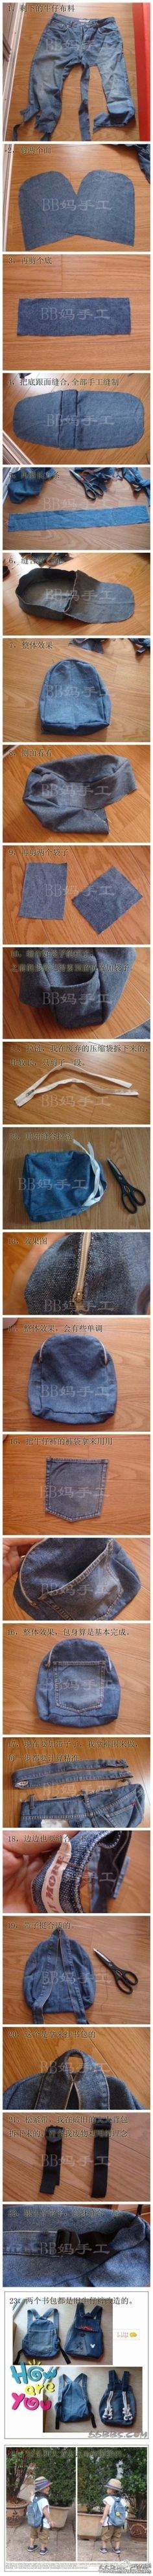 jean backpack DIY by bonniemae. Good for jeans that you can't wear anymore.